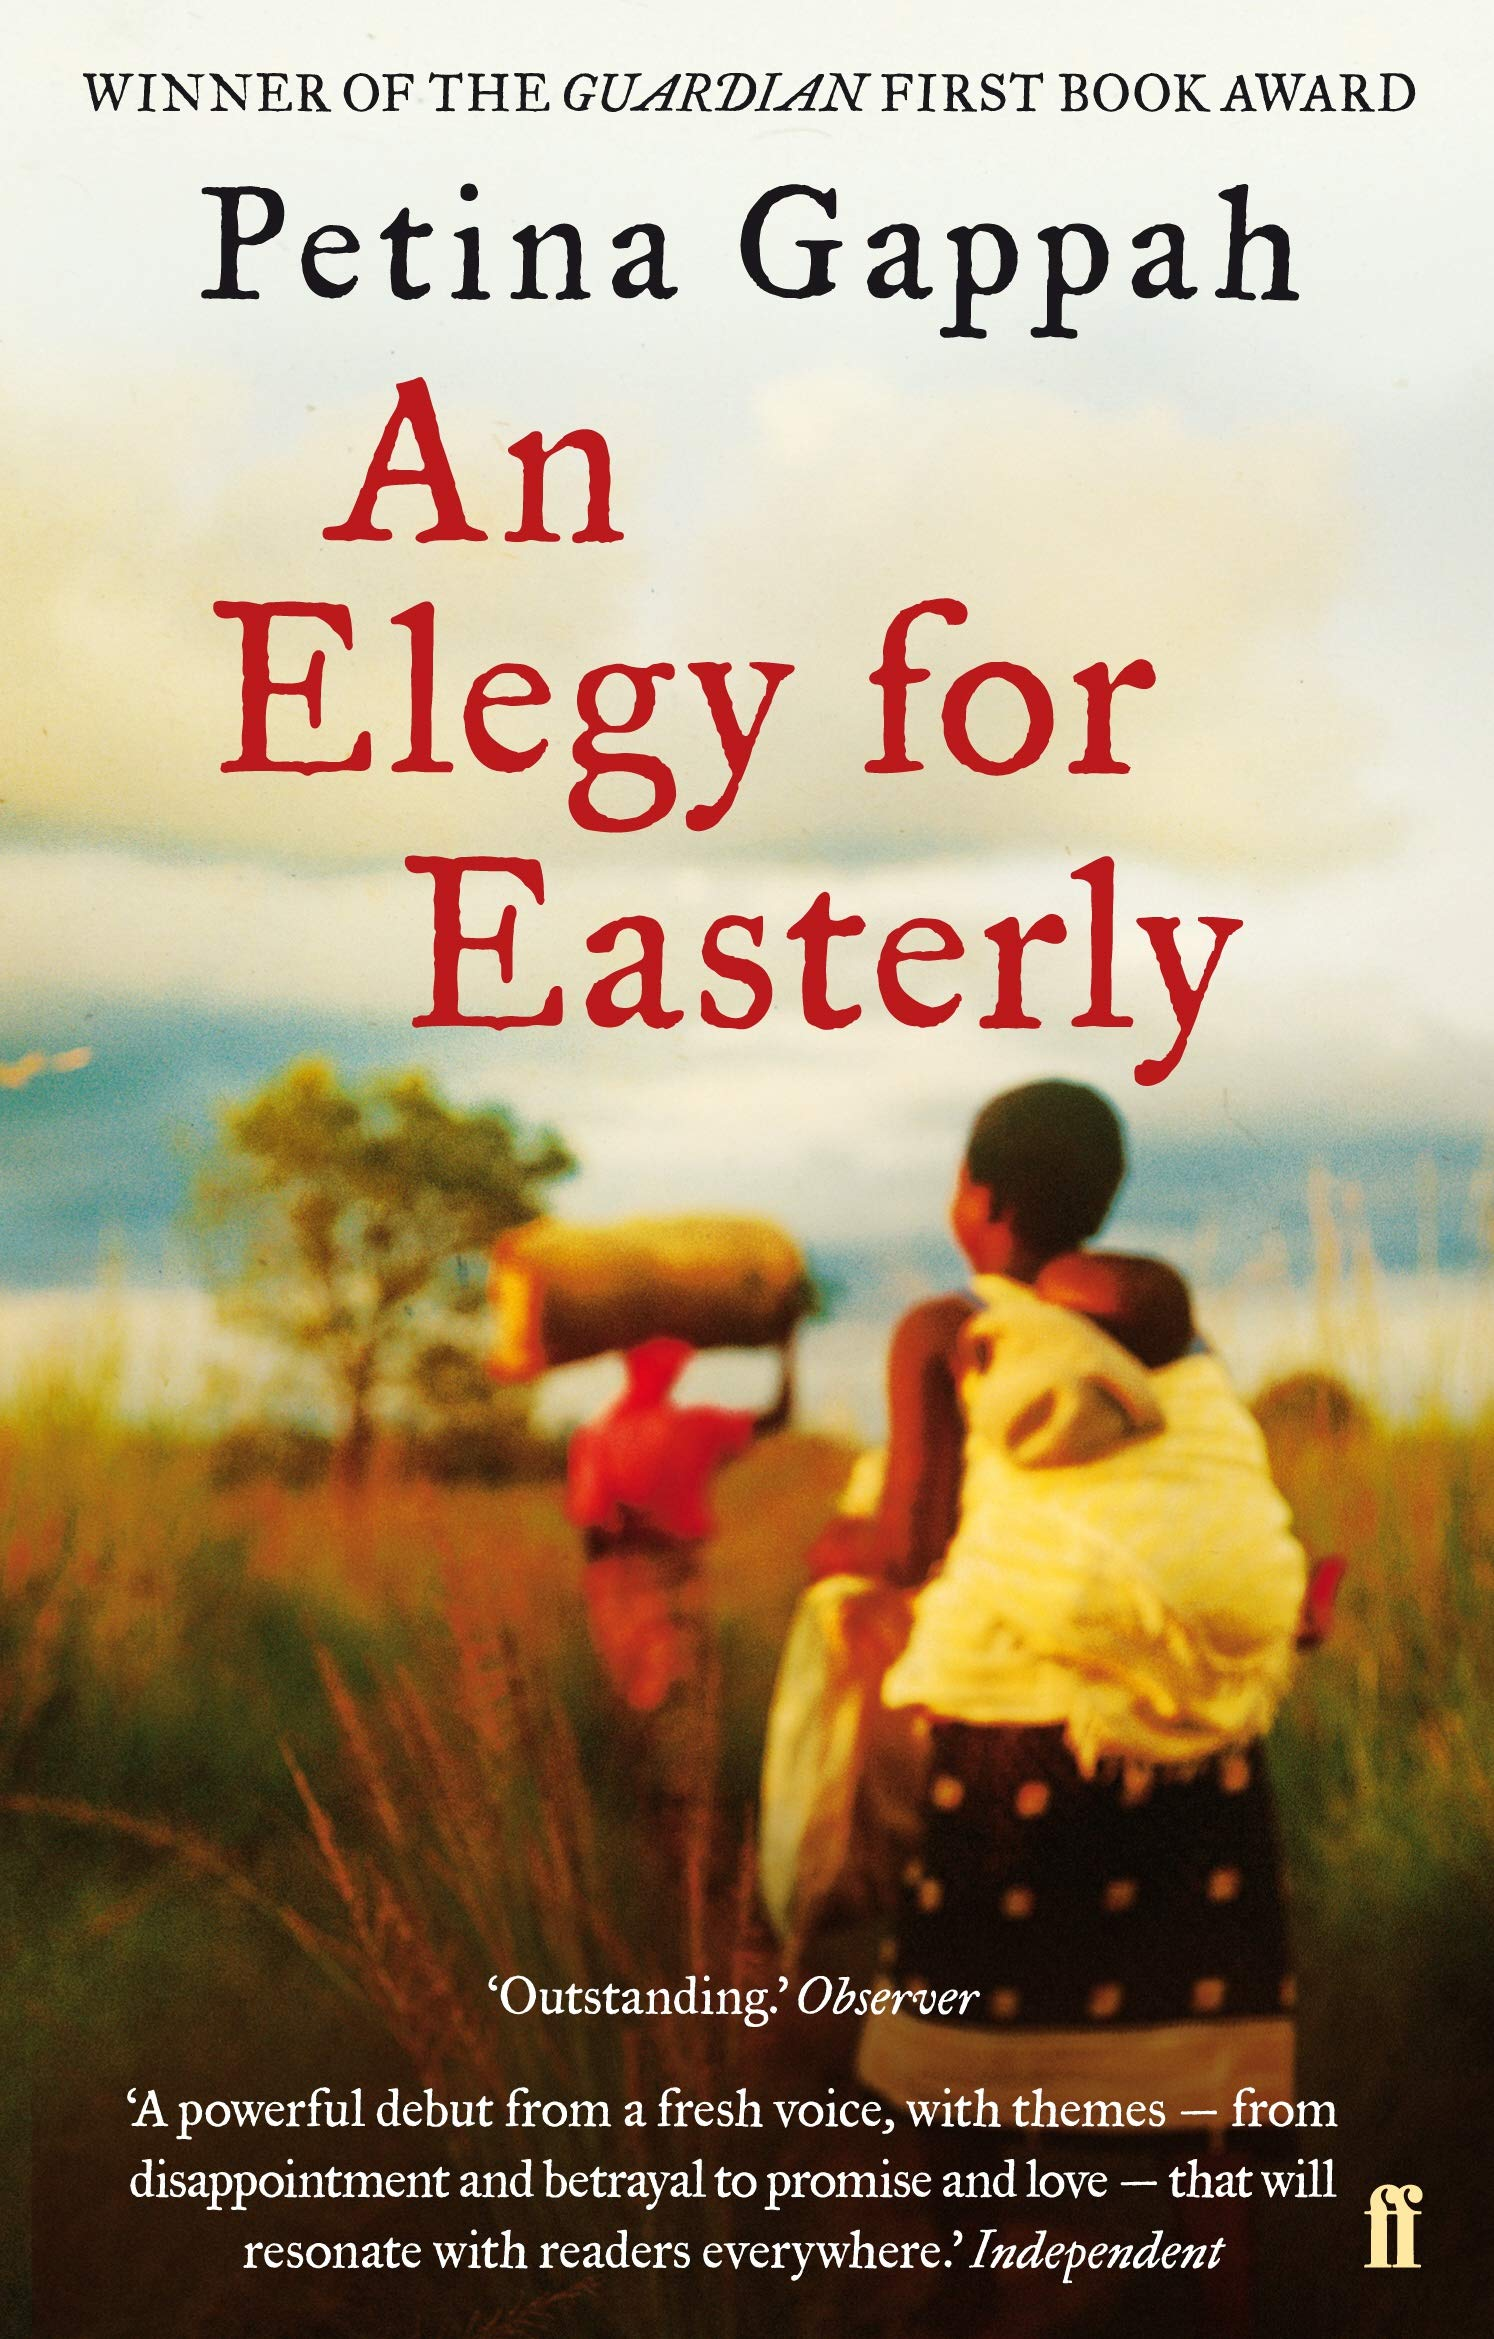 An Elegy for Easterly: Amazon.co.uk: Gappah, Petina: 9780571246946: Books